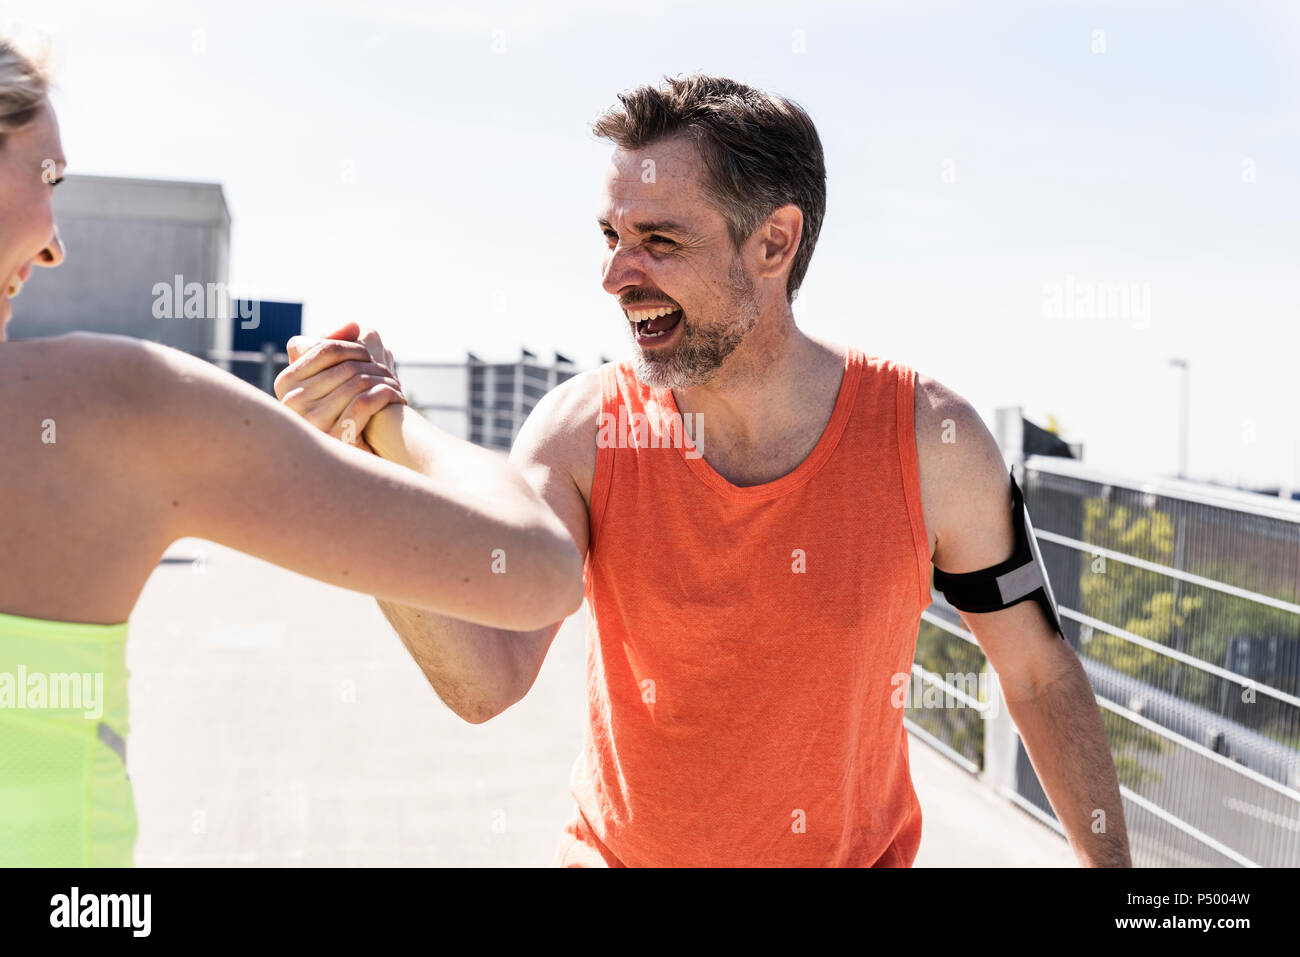 Couple working out together, having fun - Stock Image